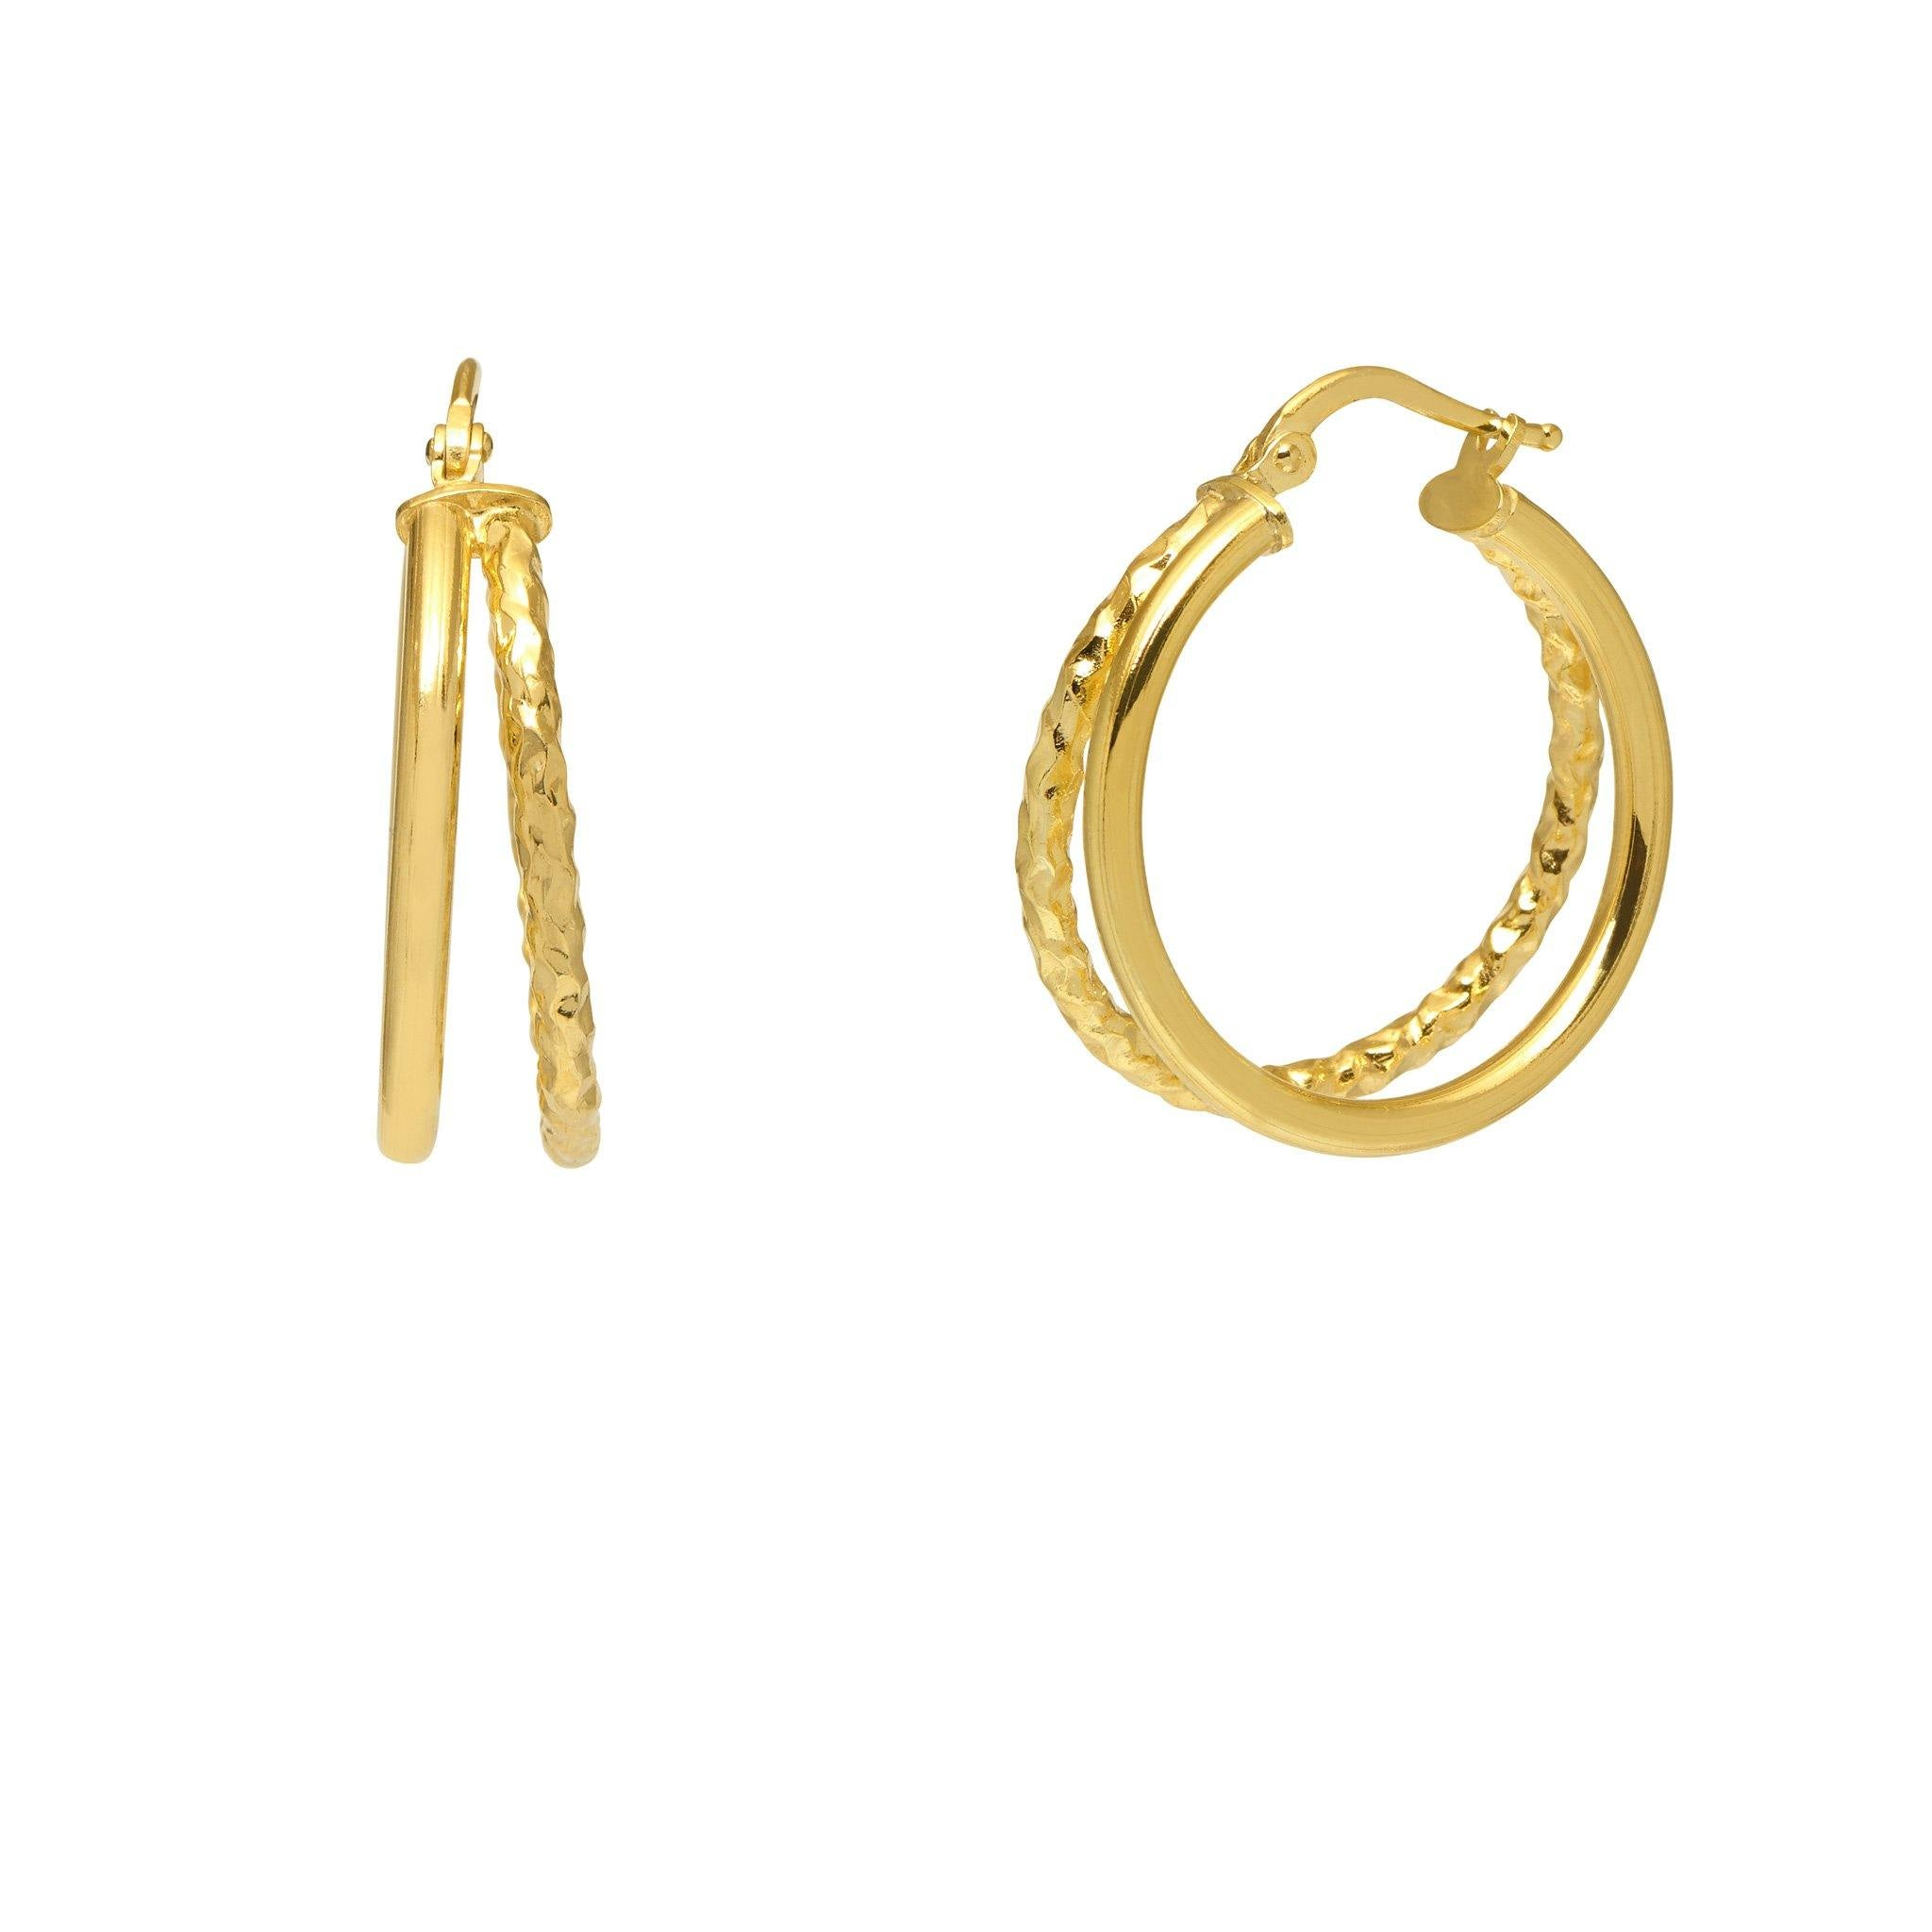 La DOPPIA LUXE Hoops (2 x sizes) - The Hoop Station 925 Sterling Silver Hoop Earrings Gold Huggies